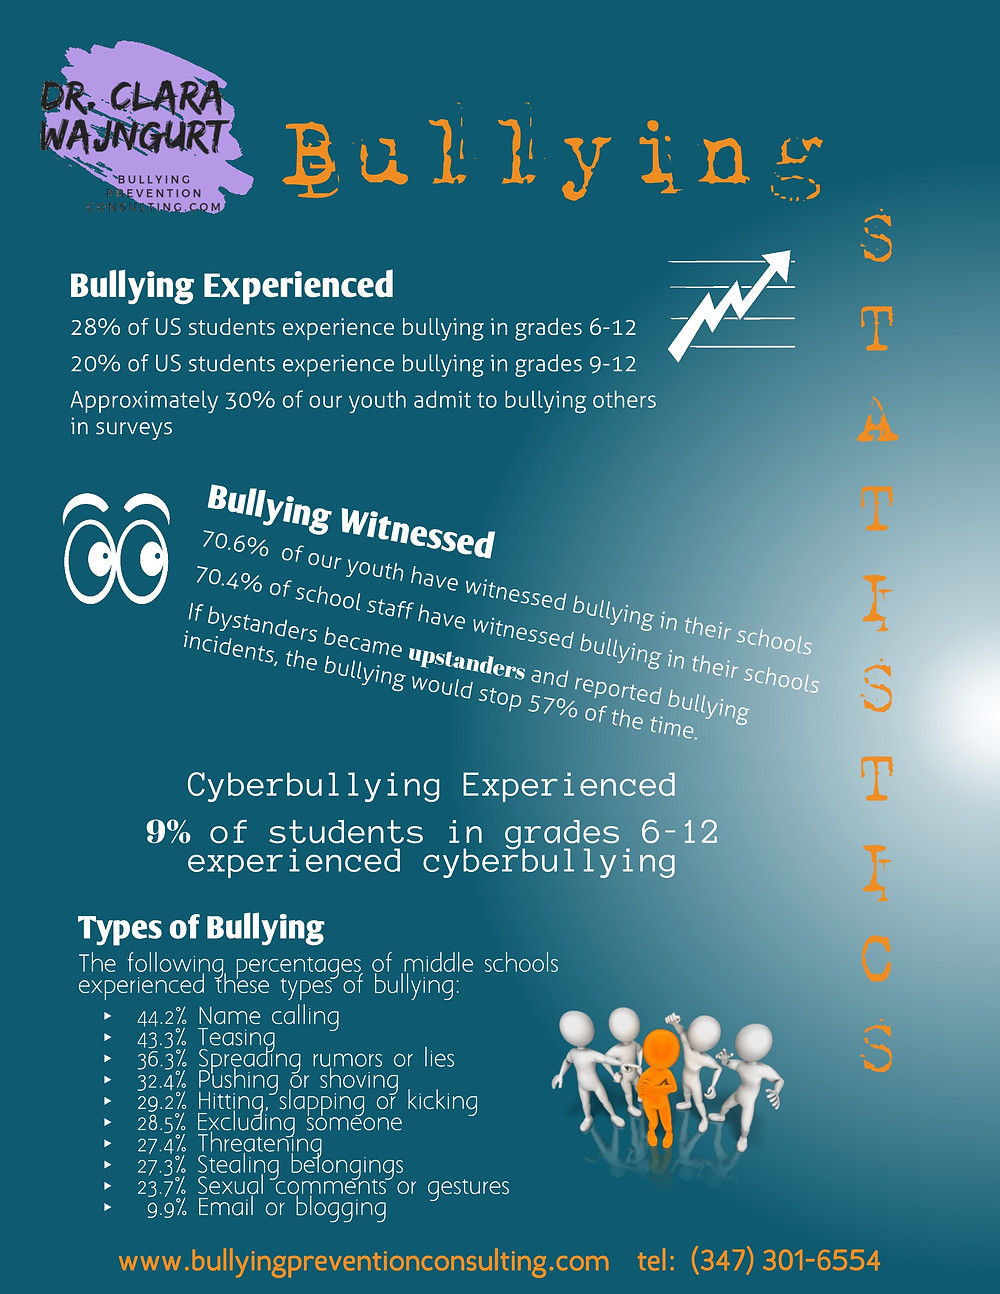 Bullying witnessed, bystanders, cyberbullying, types of bullying, upstanders